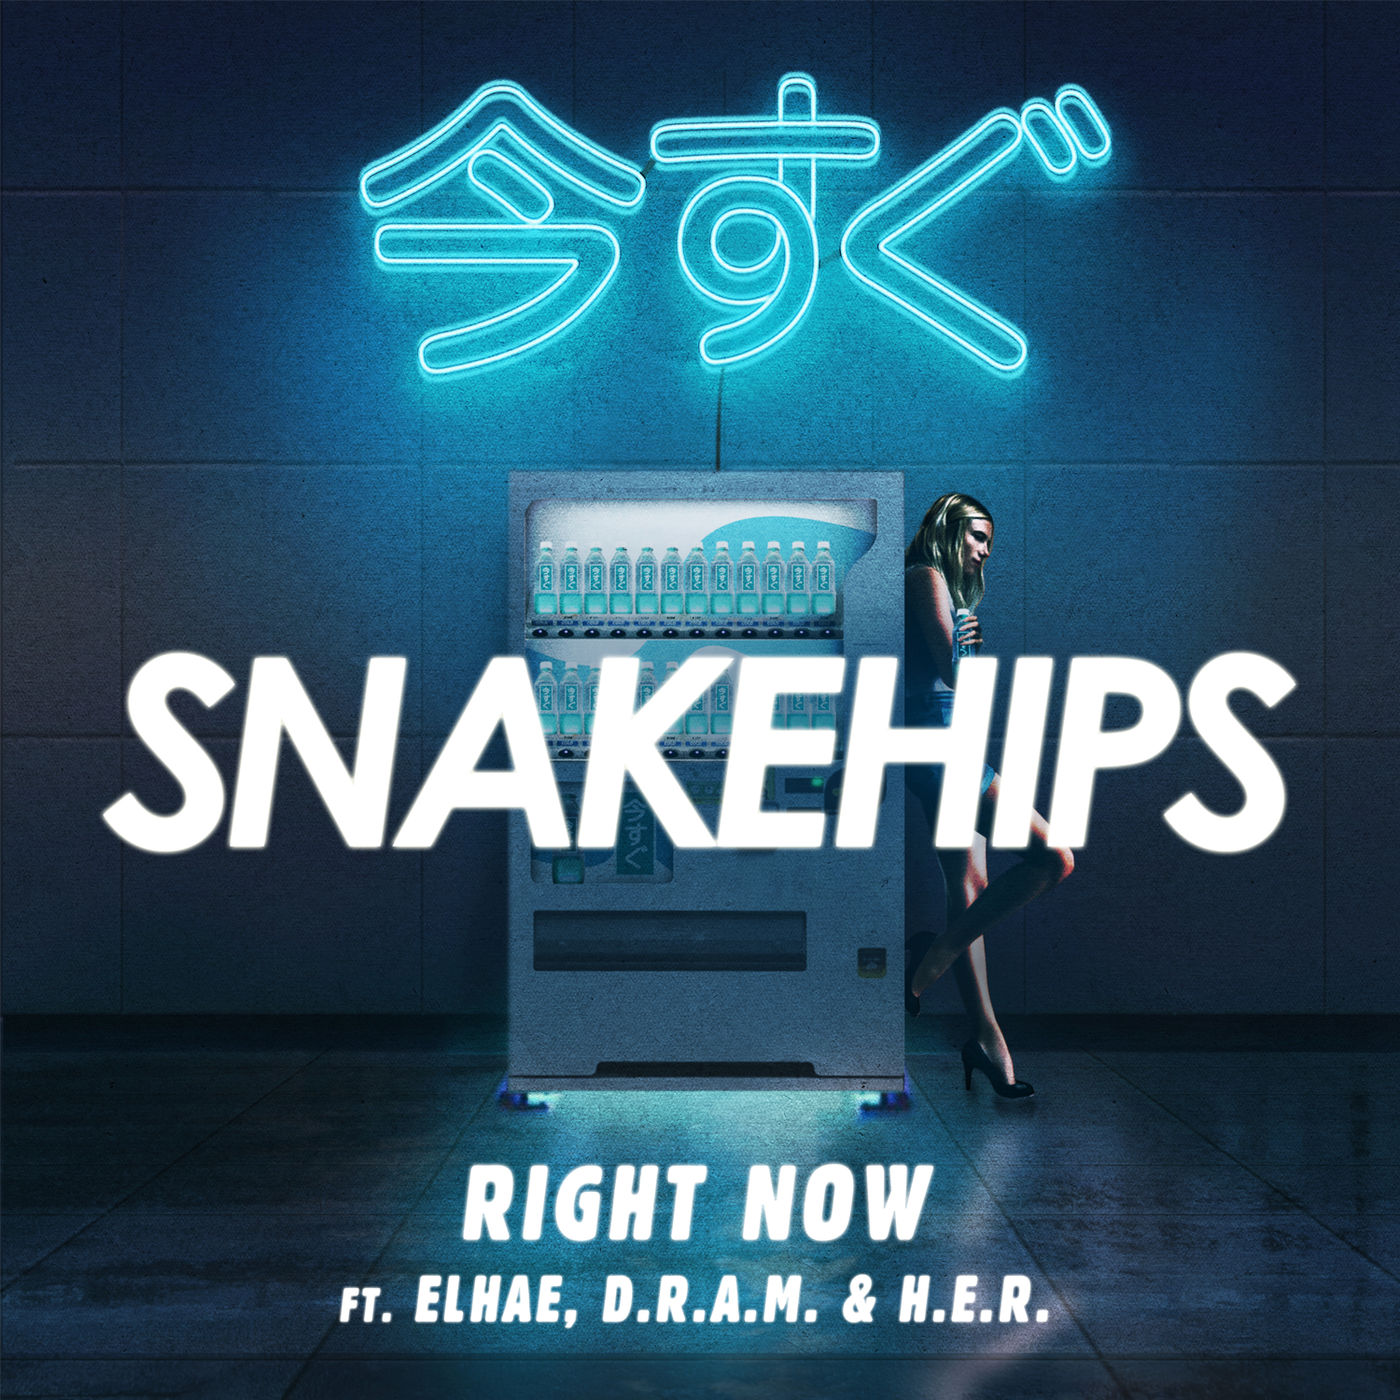 Snakehips - Right Now (feat. ELHAE, D.R.A.M. & H.E.R.) - Single Cover